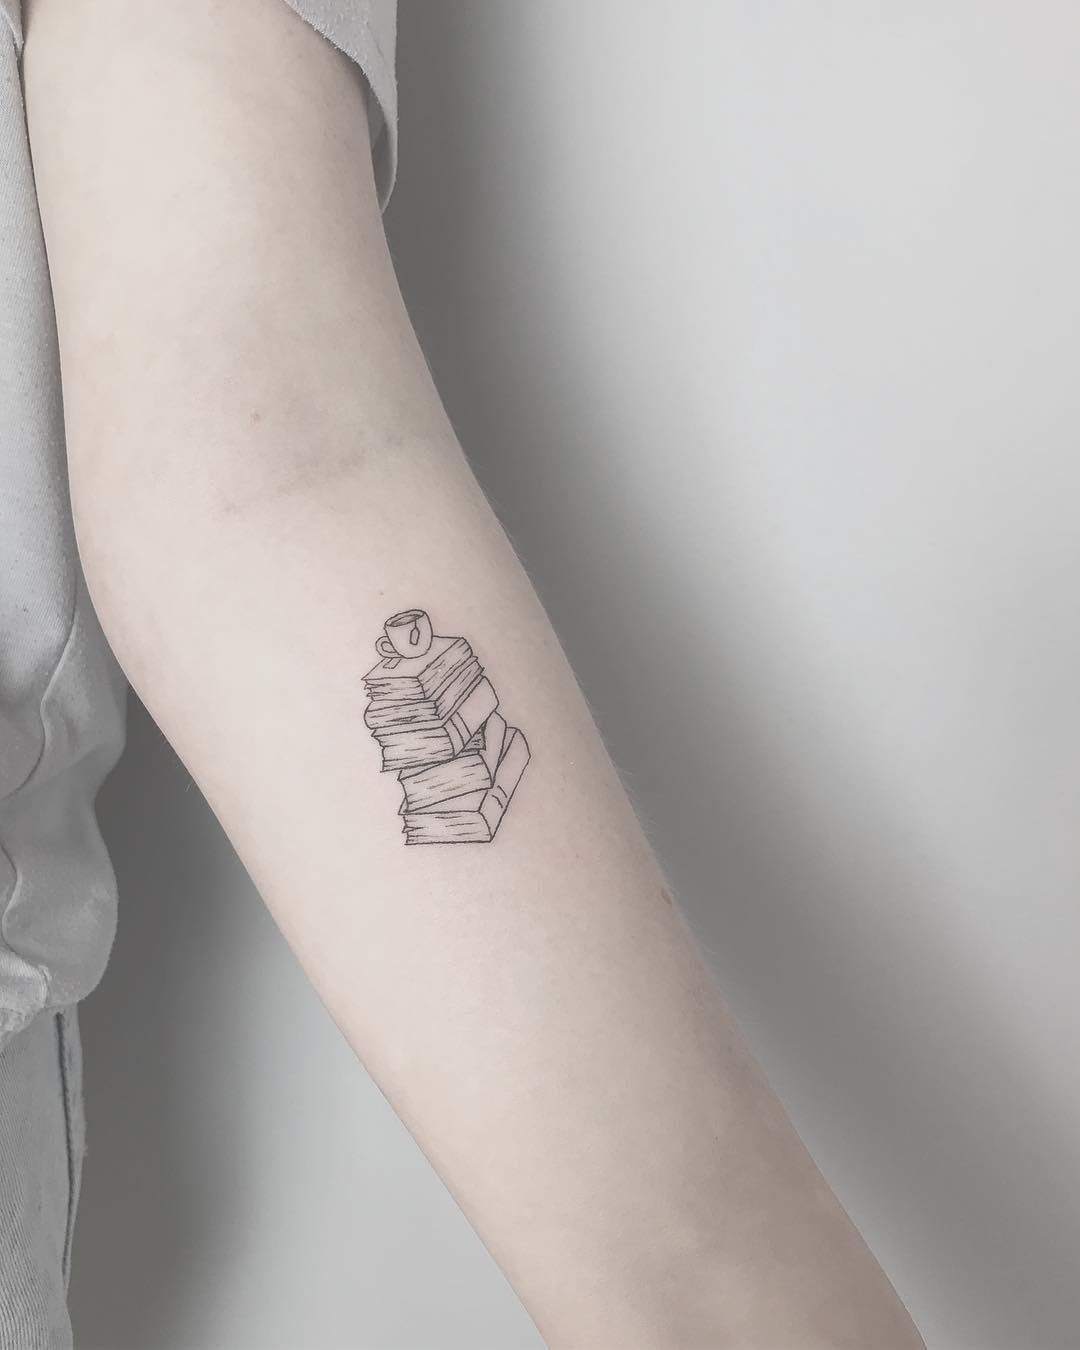 Girl with a small tattoo of books on her arm